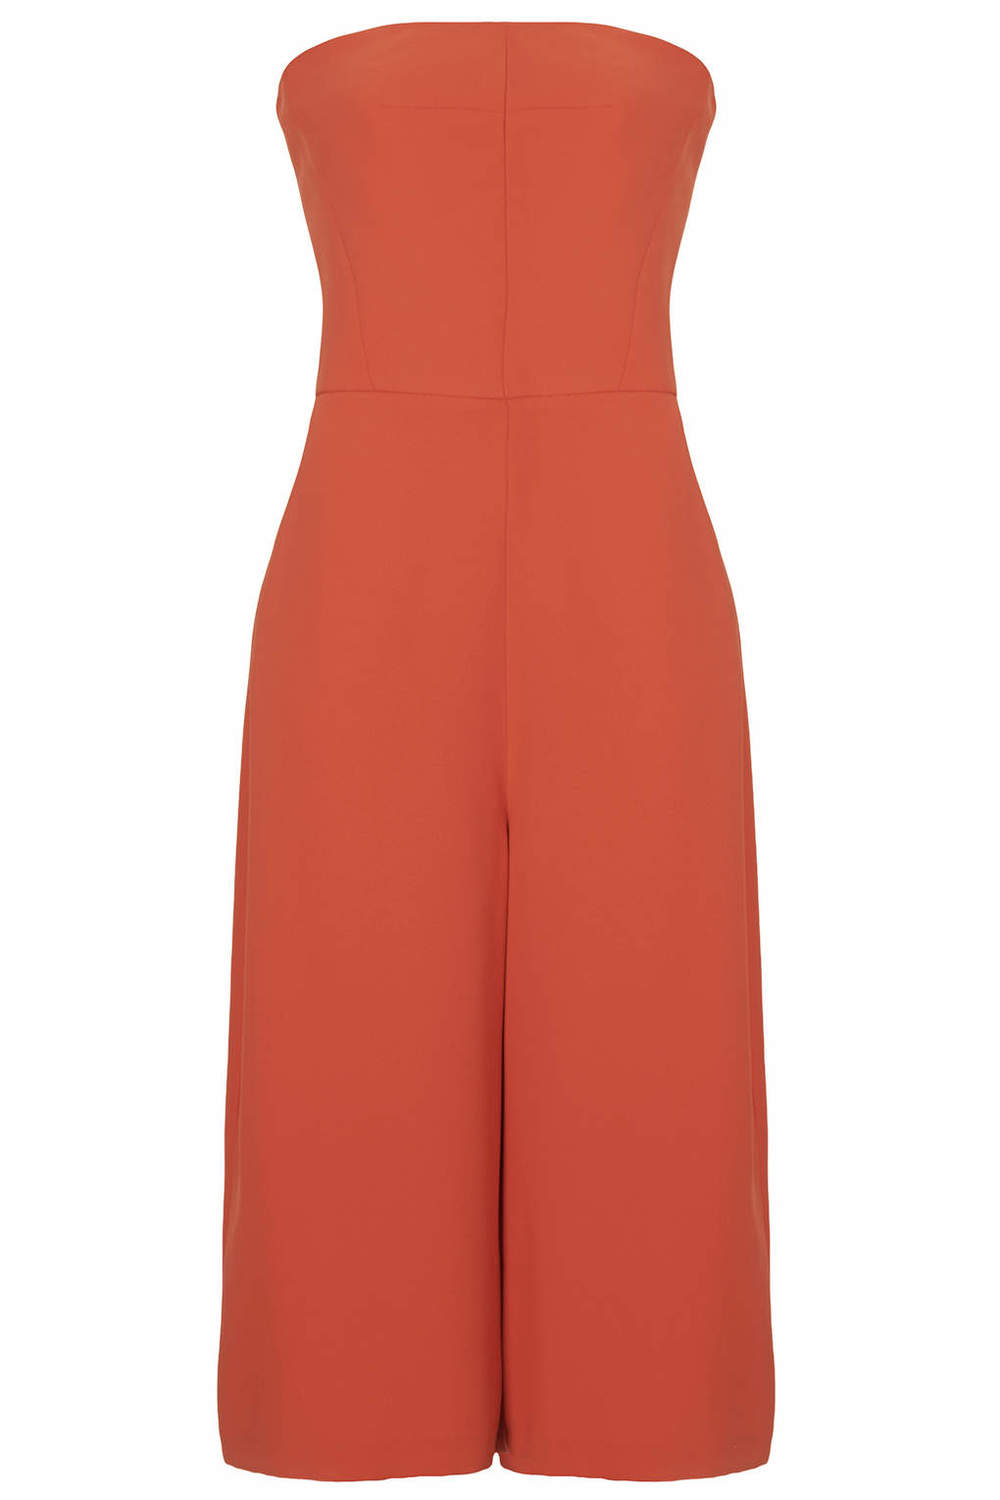 (Triangle) Personal obsession: Culottes and a jumpsuit. Oh my! Minimal Culotte Jumpsuit. TopShop USA. $120.